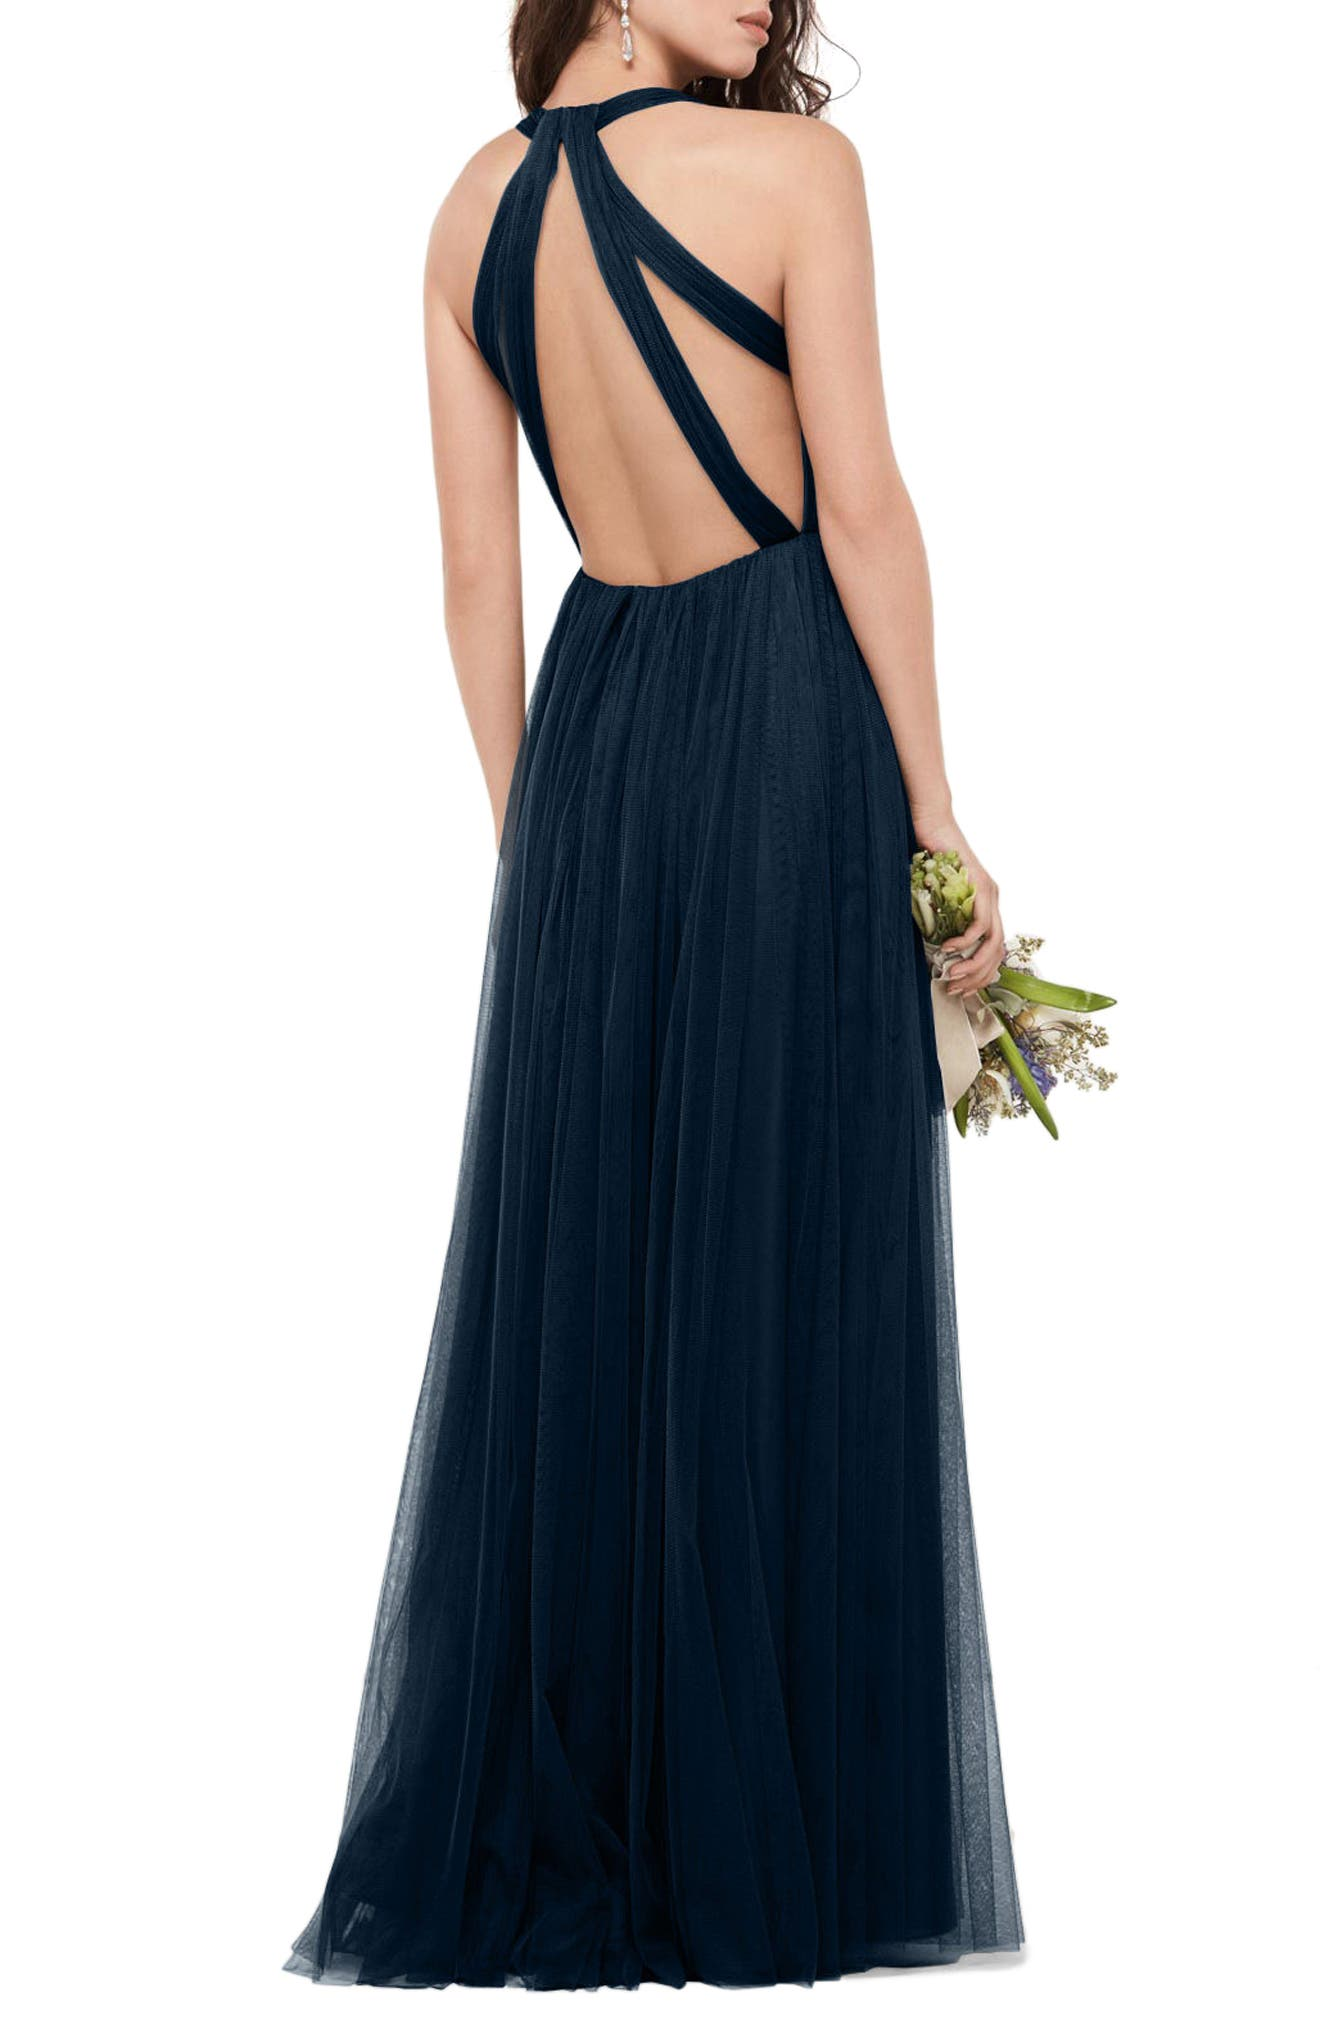 Bobbinet Halter Gown,                             Alternate thumbnail 2, color,                             Indigo